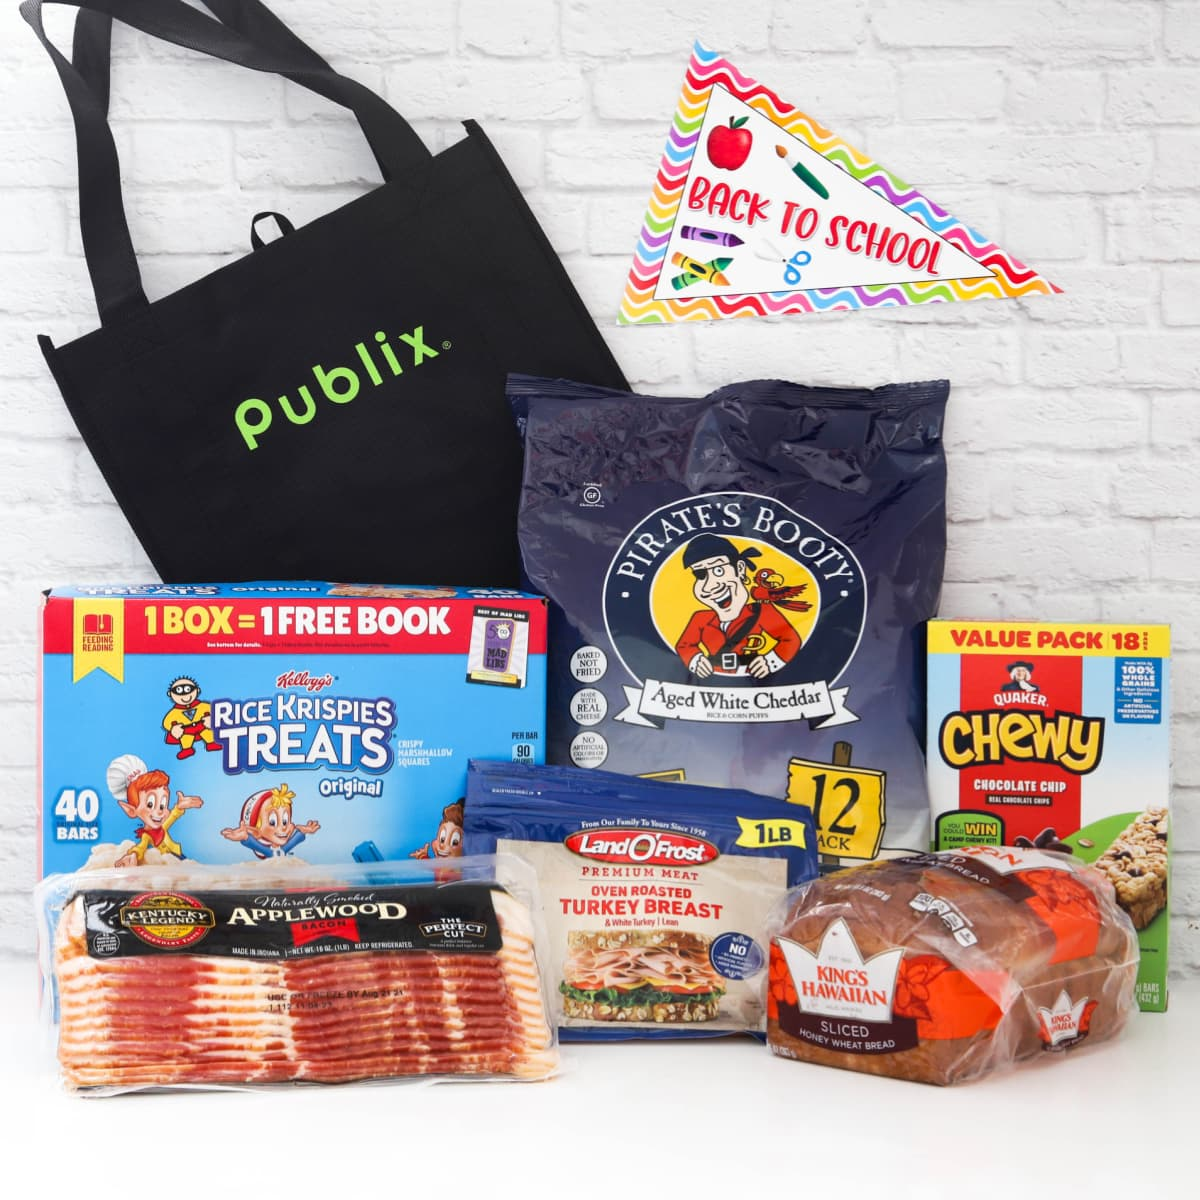 Food on sale during the Publix Back to School promotion